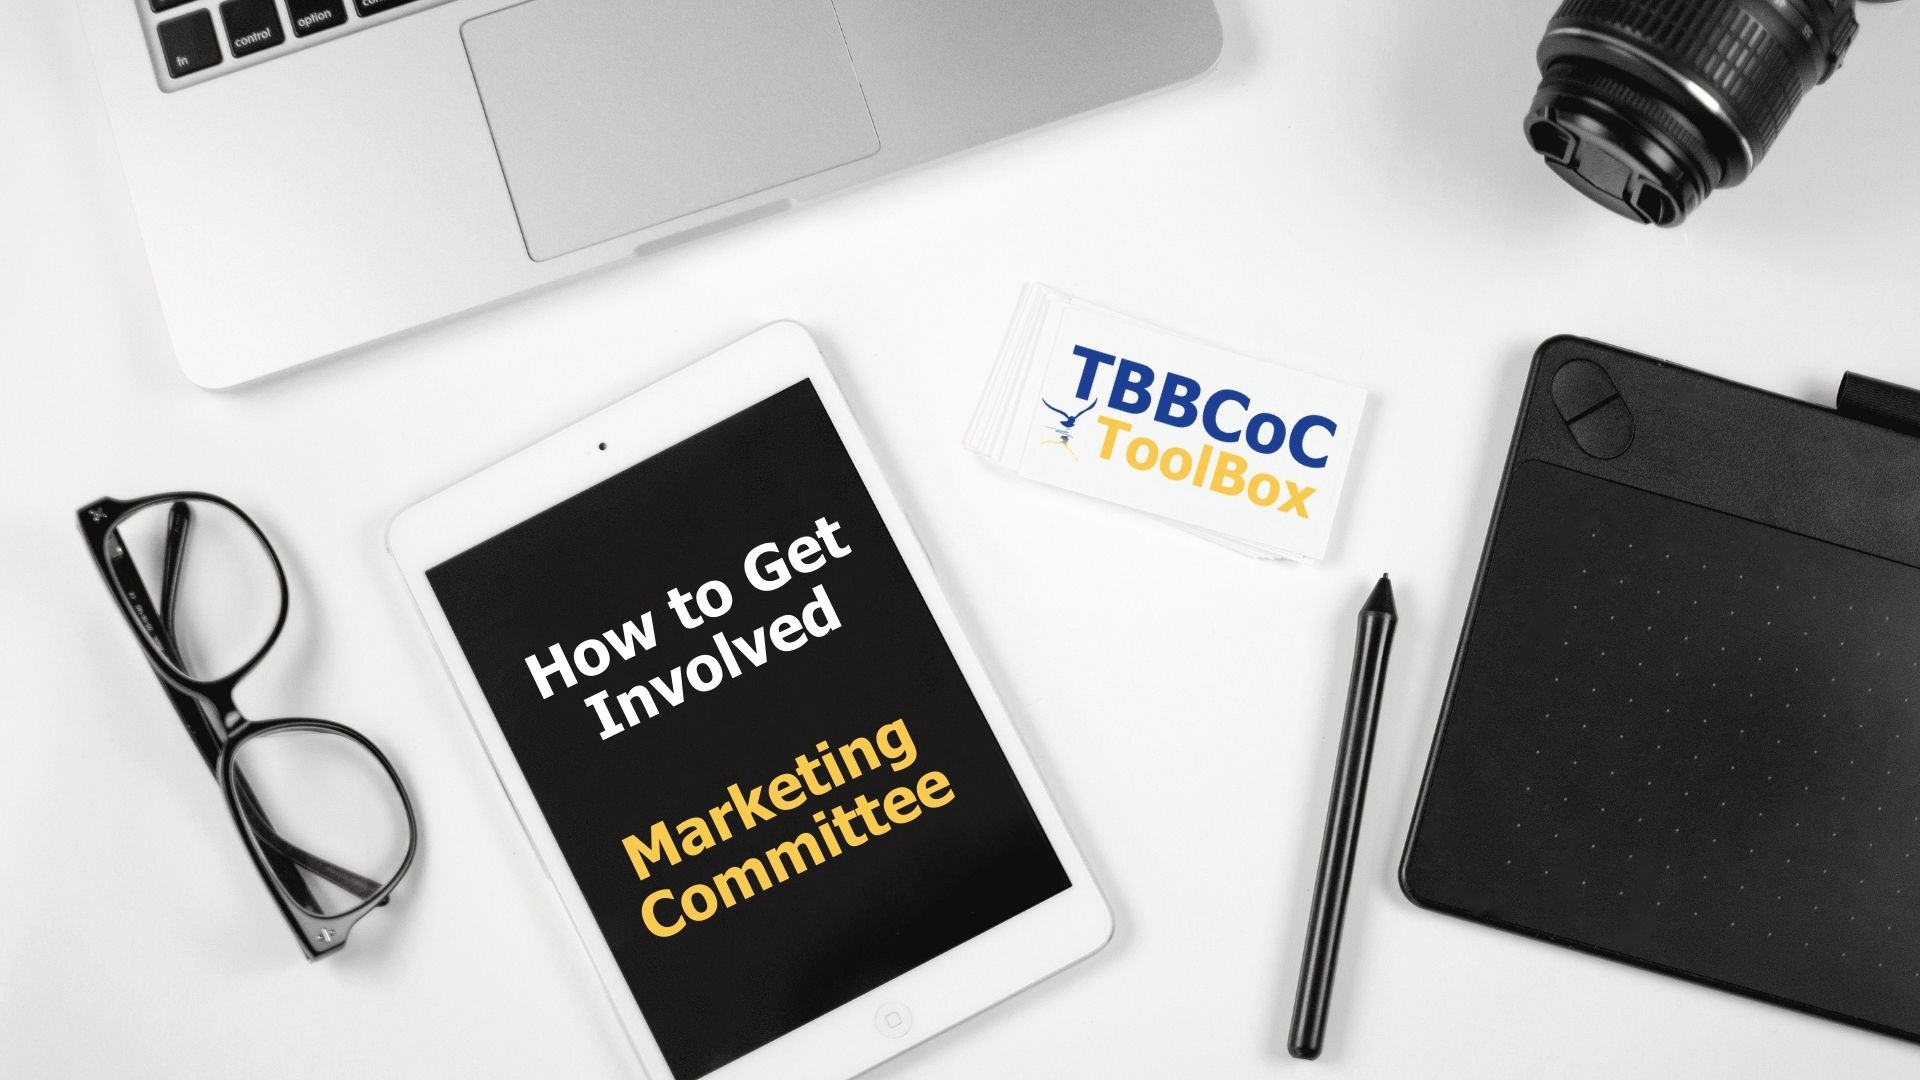 Image for How To Get Involved: Marketing Committee